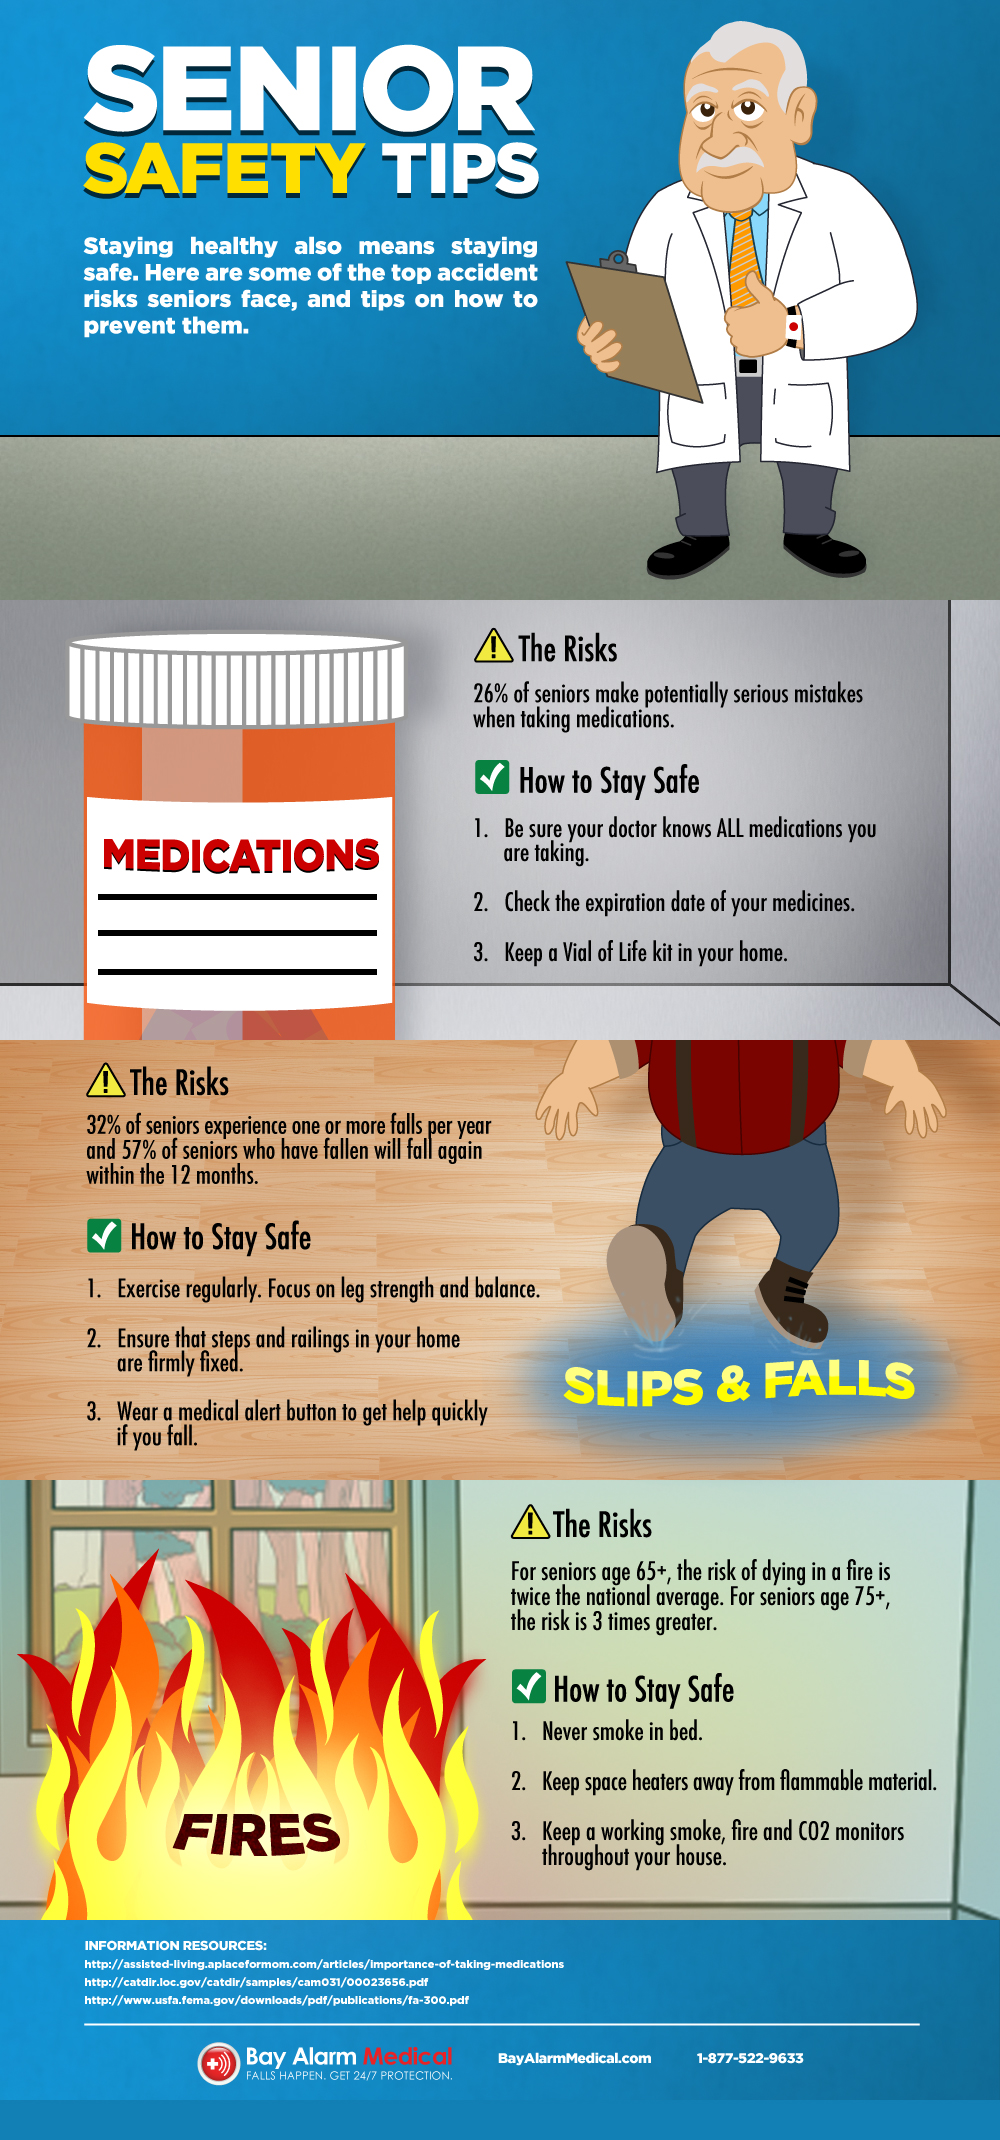 senior-safety-risks--tips-for-staying-safe_51895a624ba88